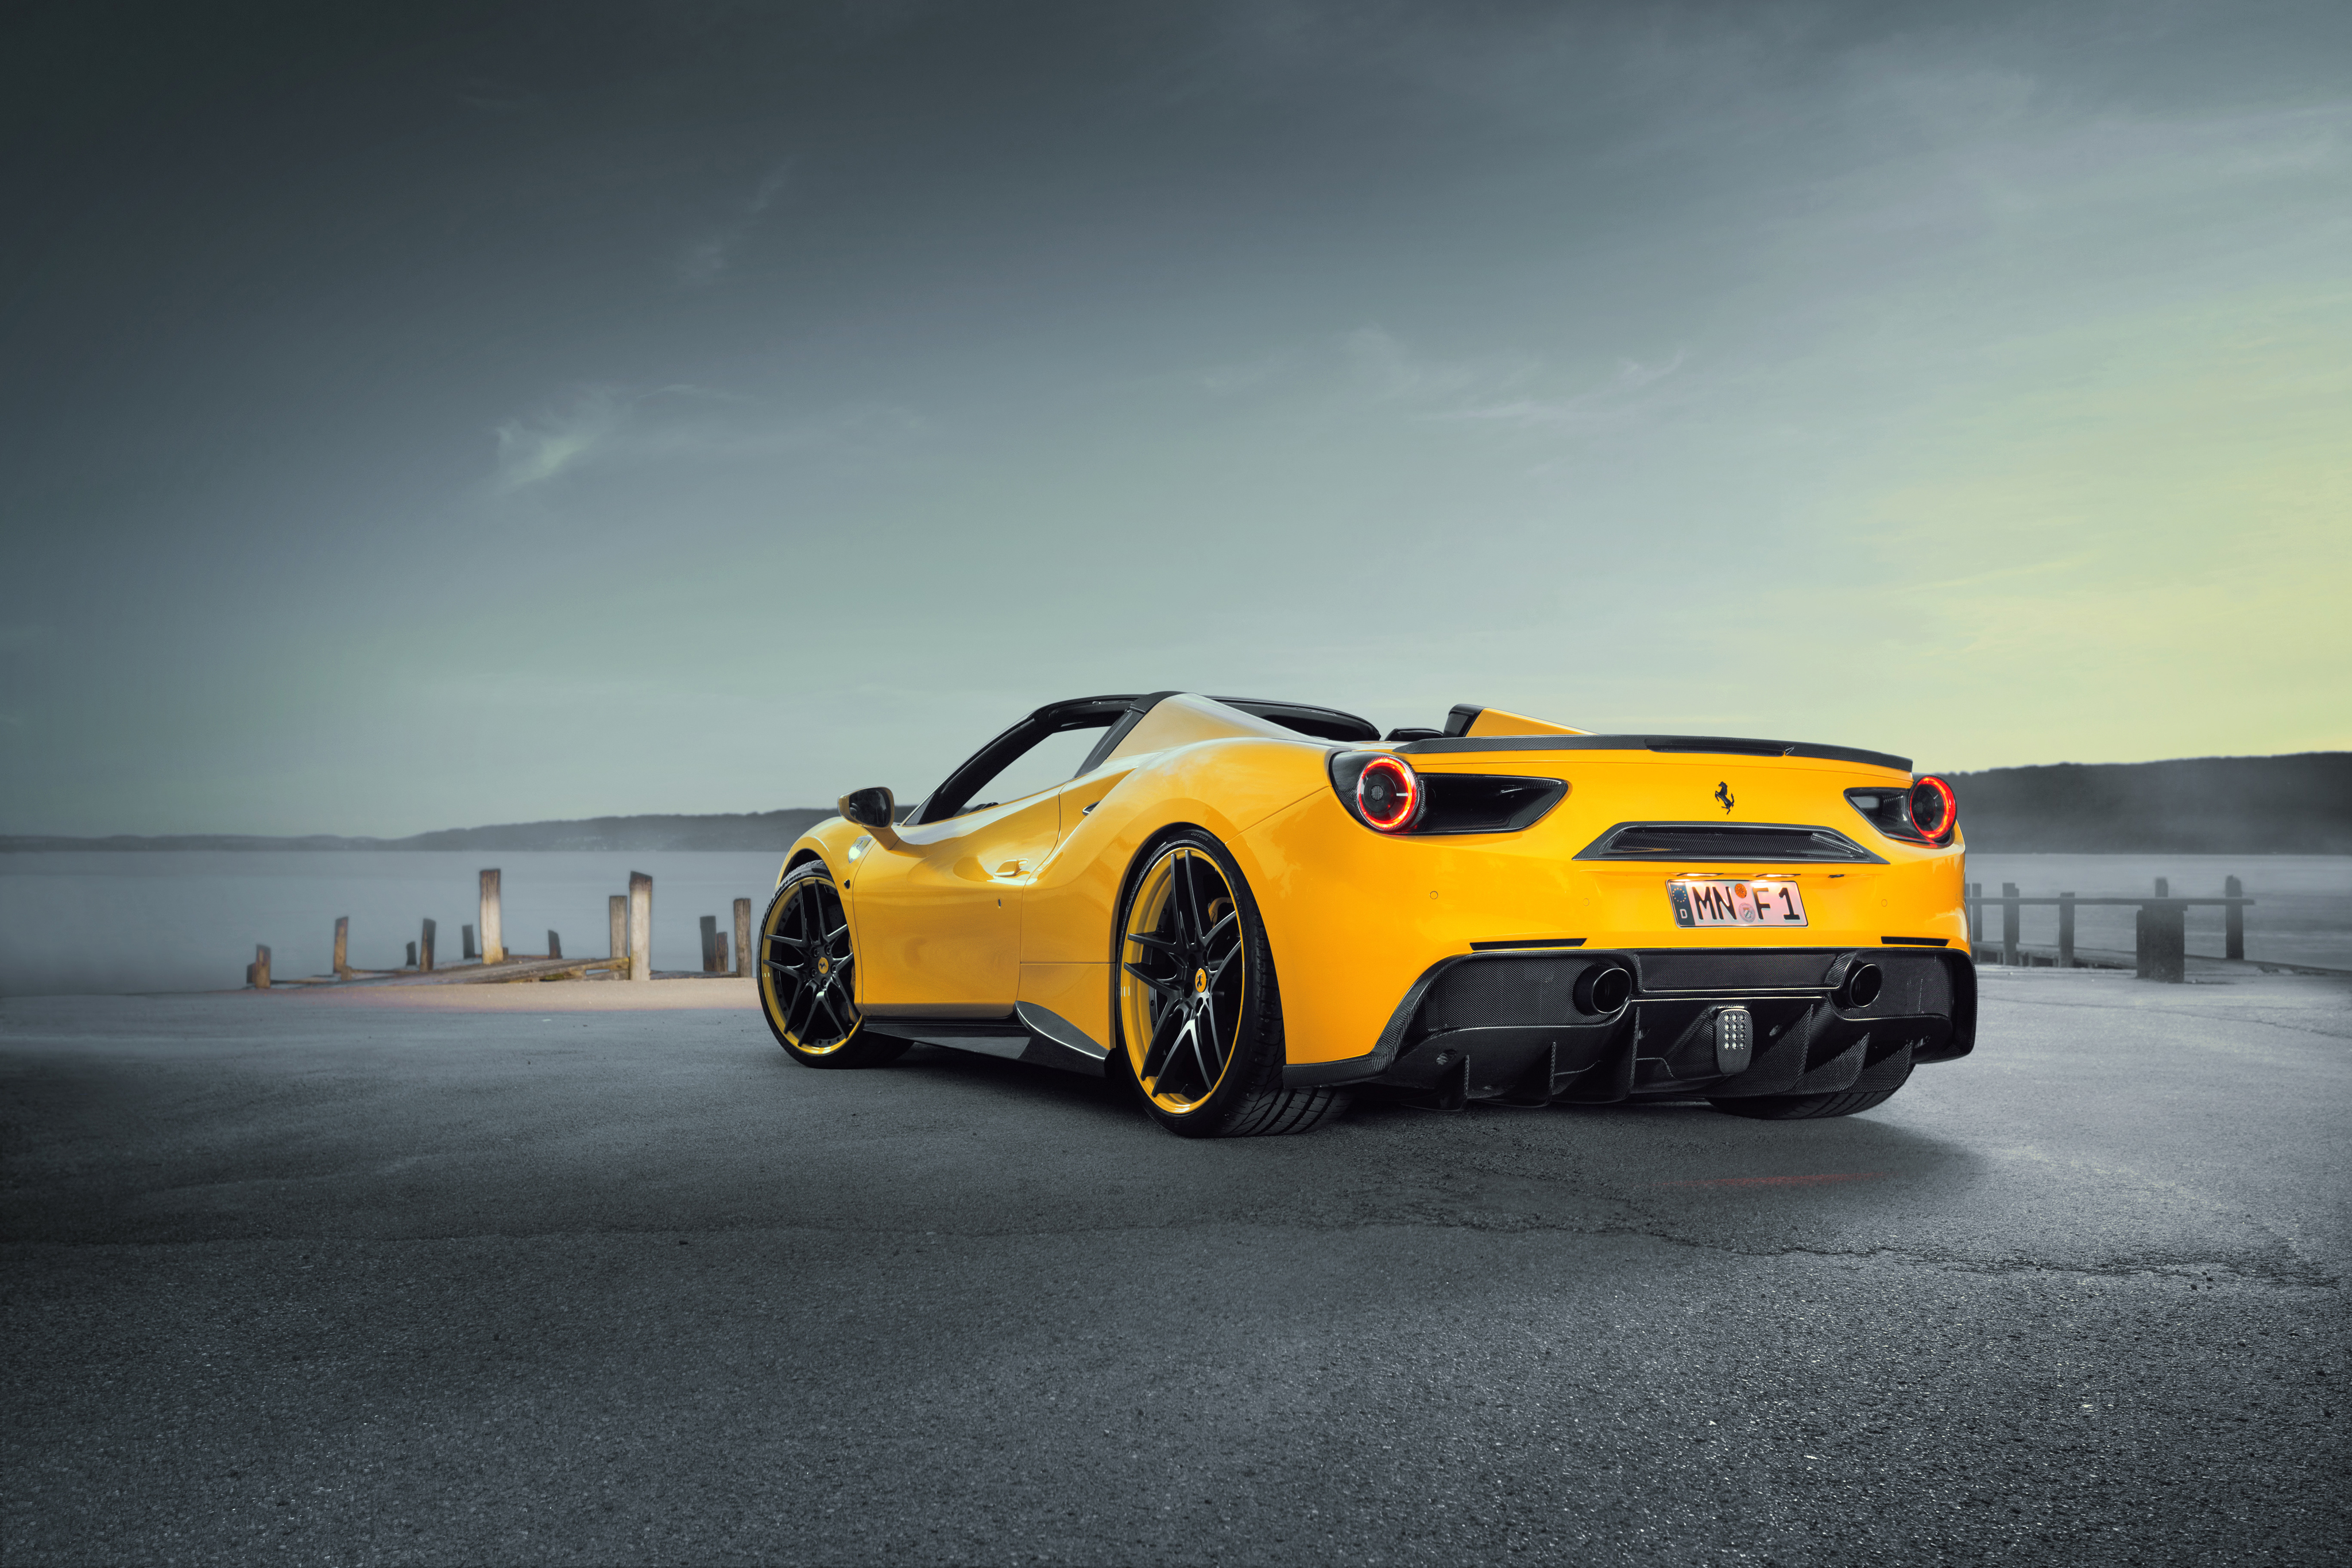 Ferrari 488 Wallpapers, Pictures, Images